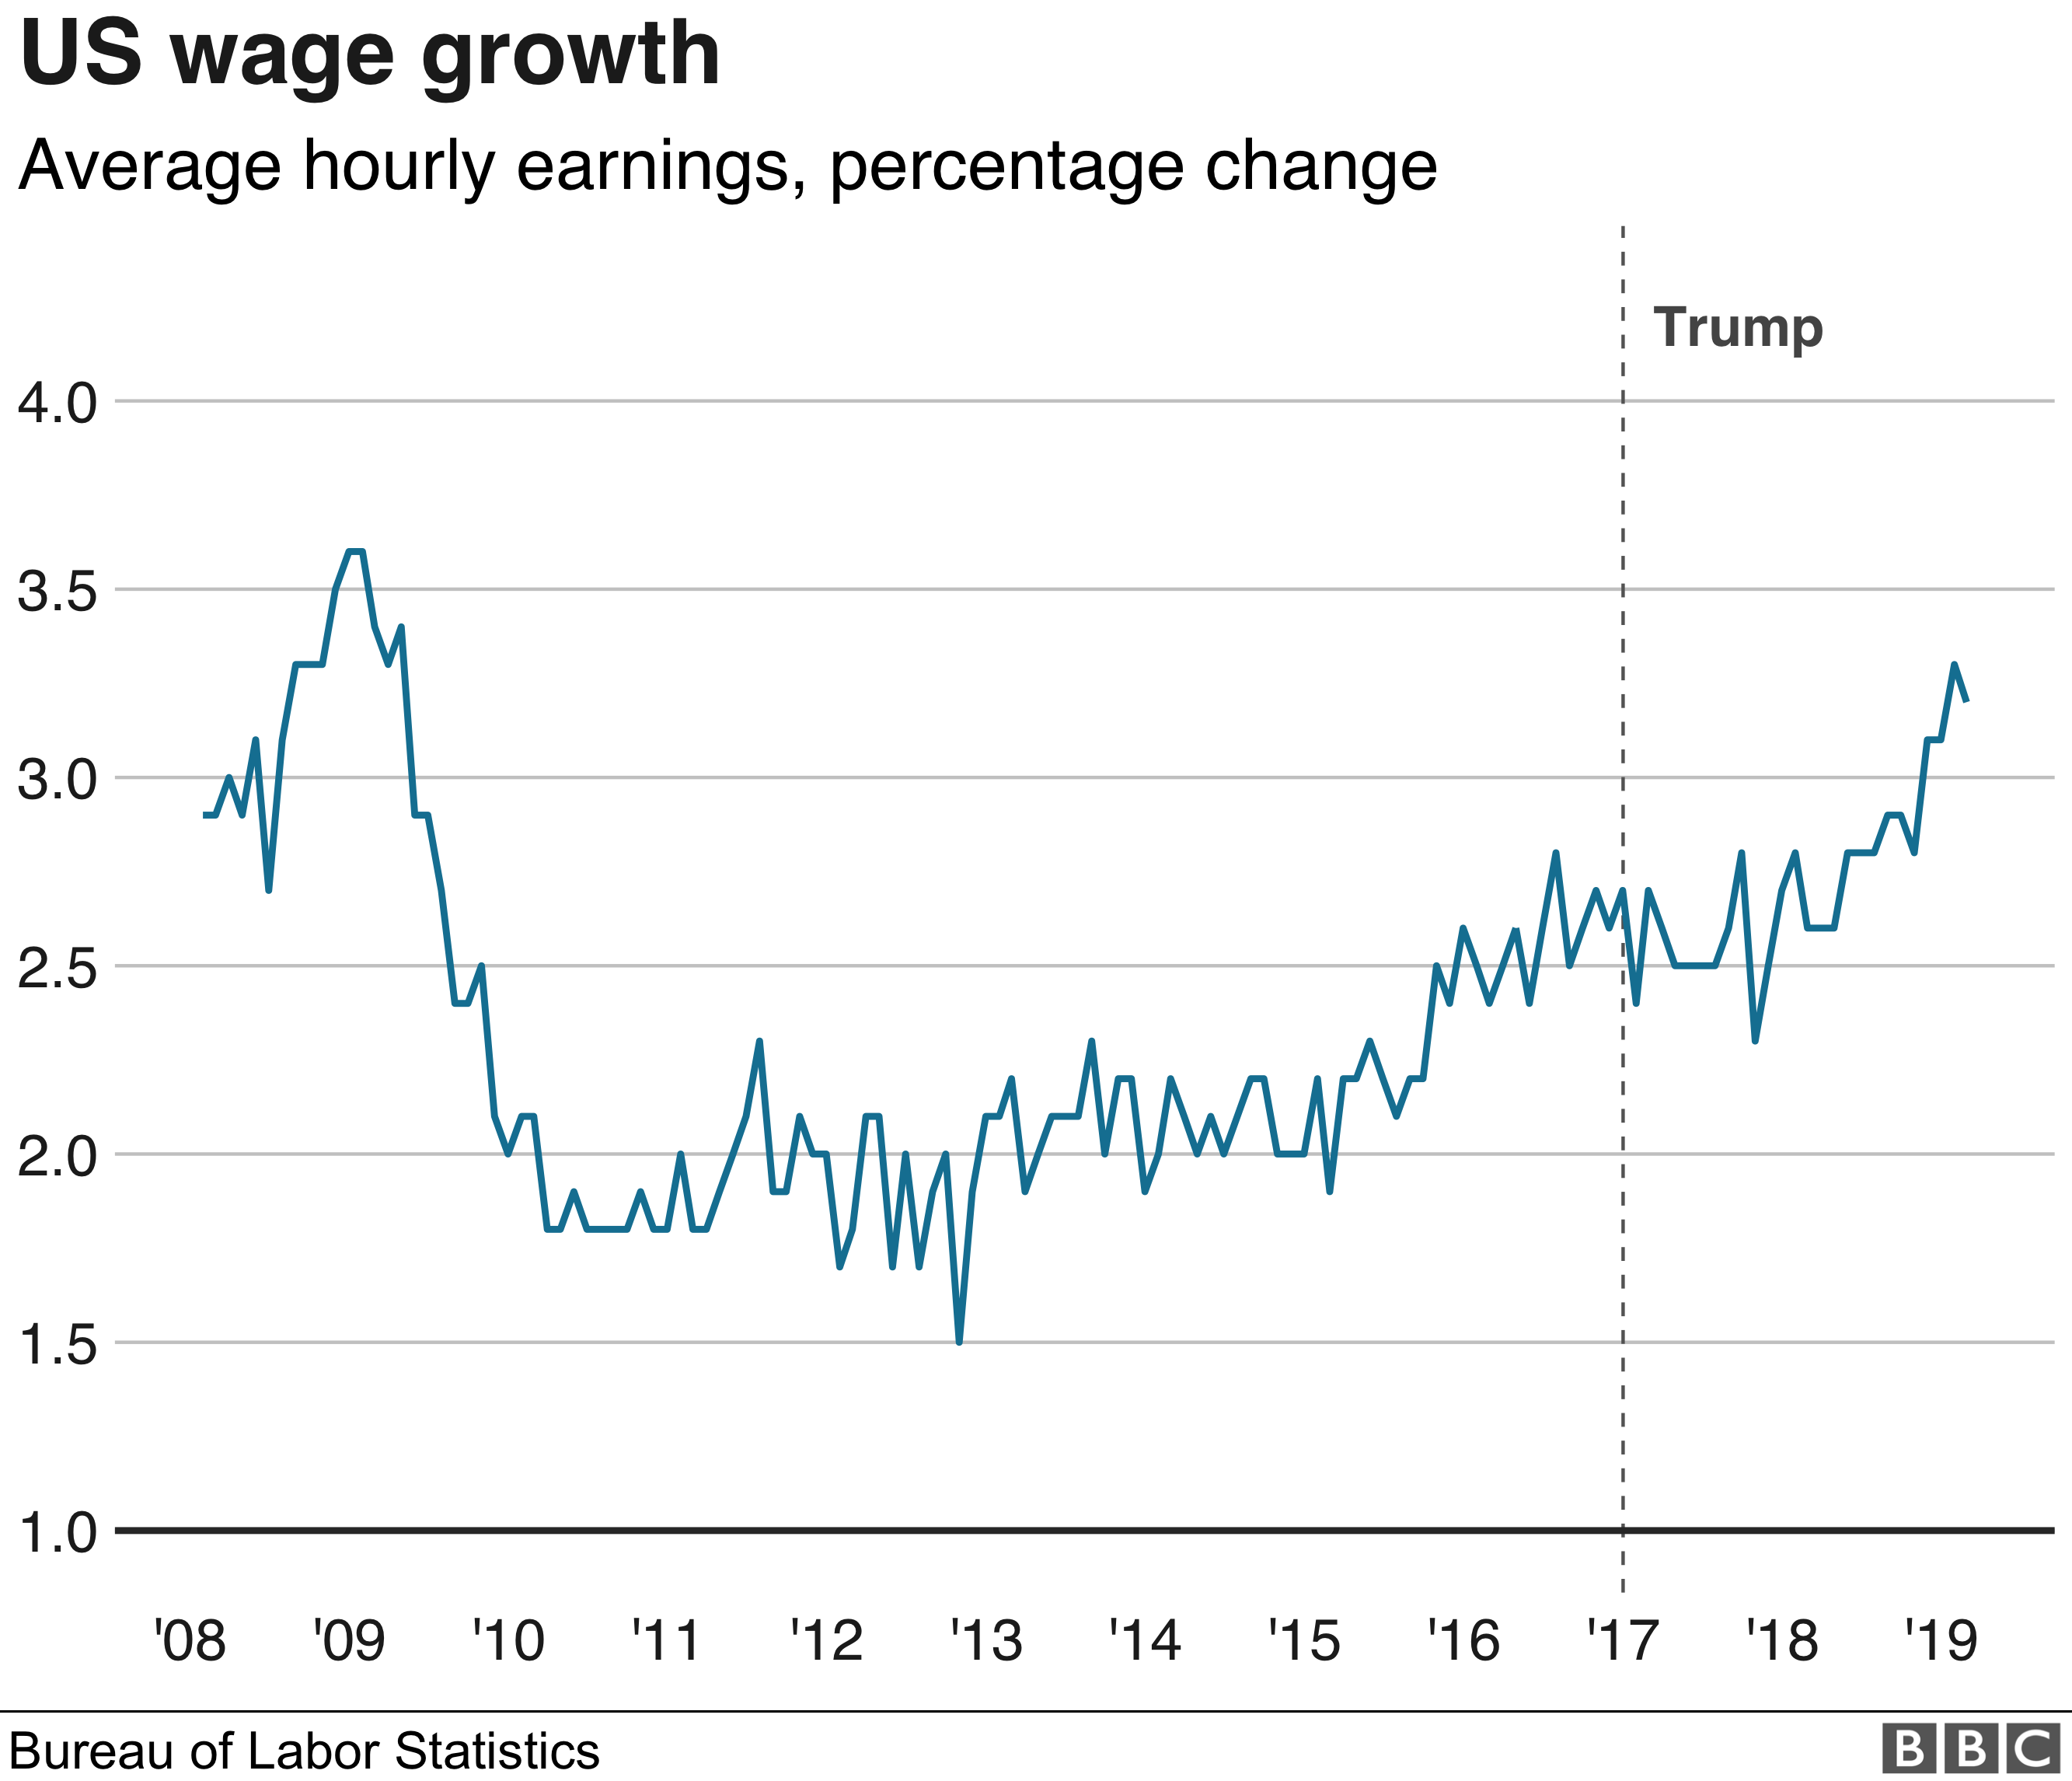 Chart shows US wage growth over time